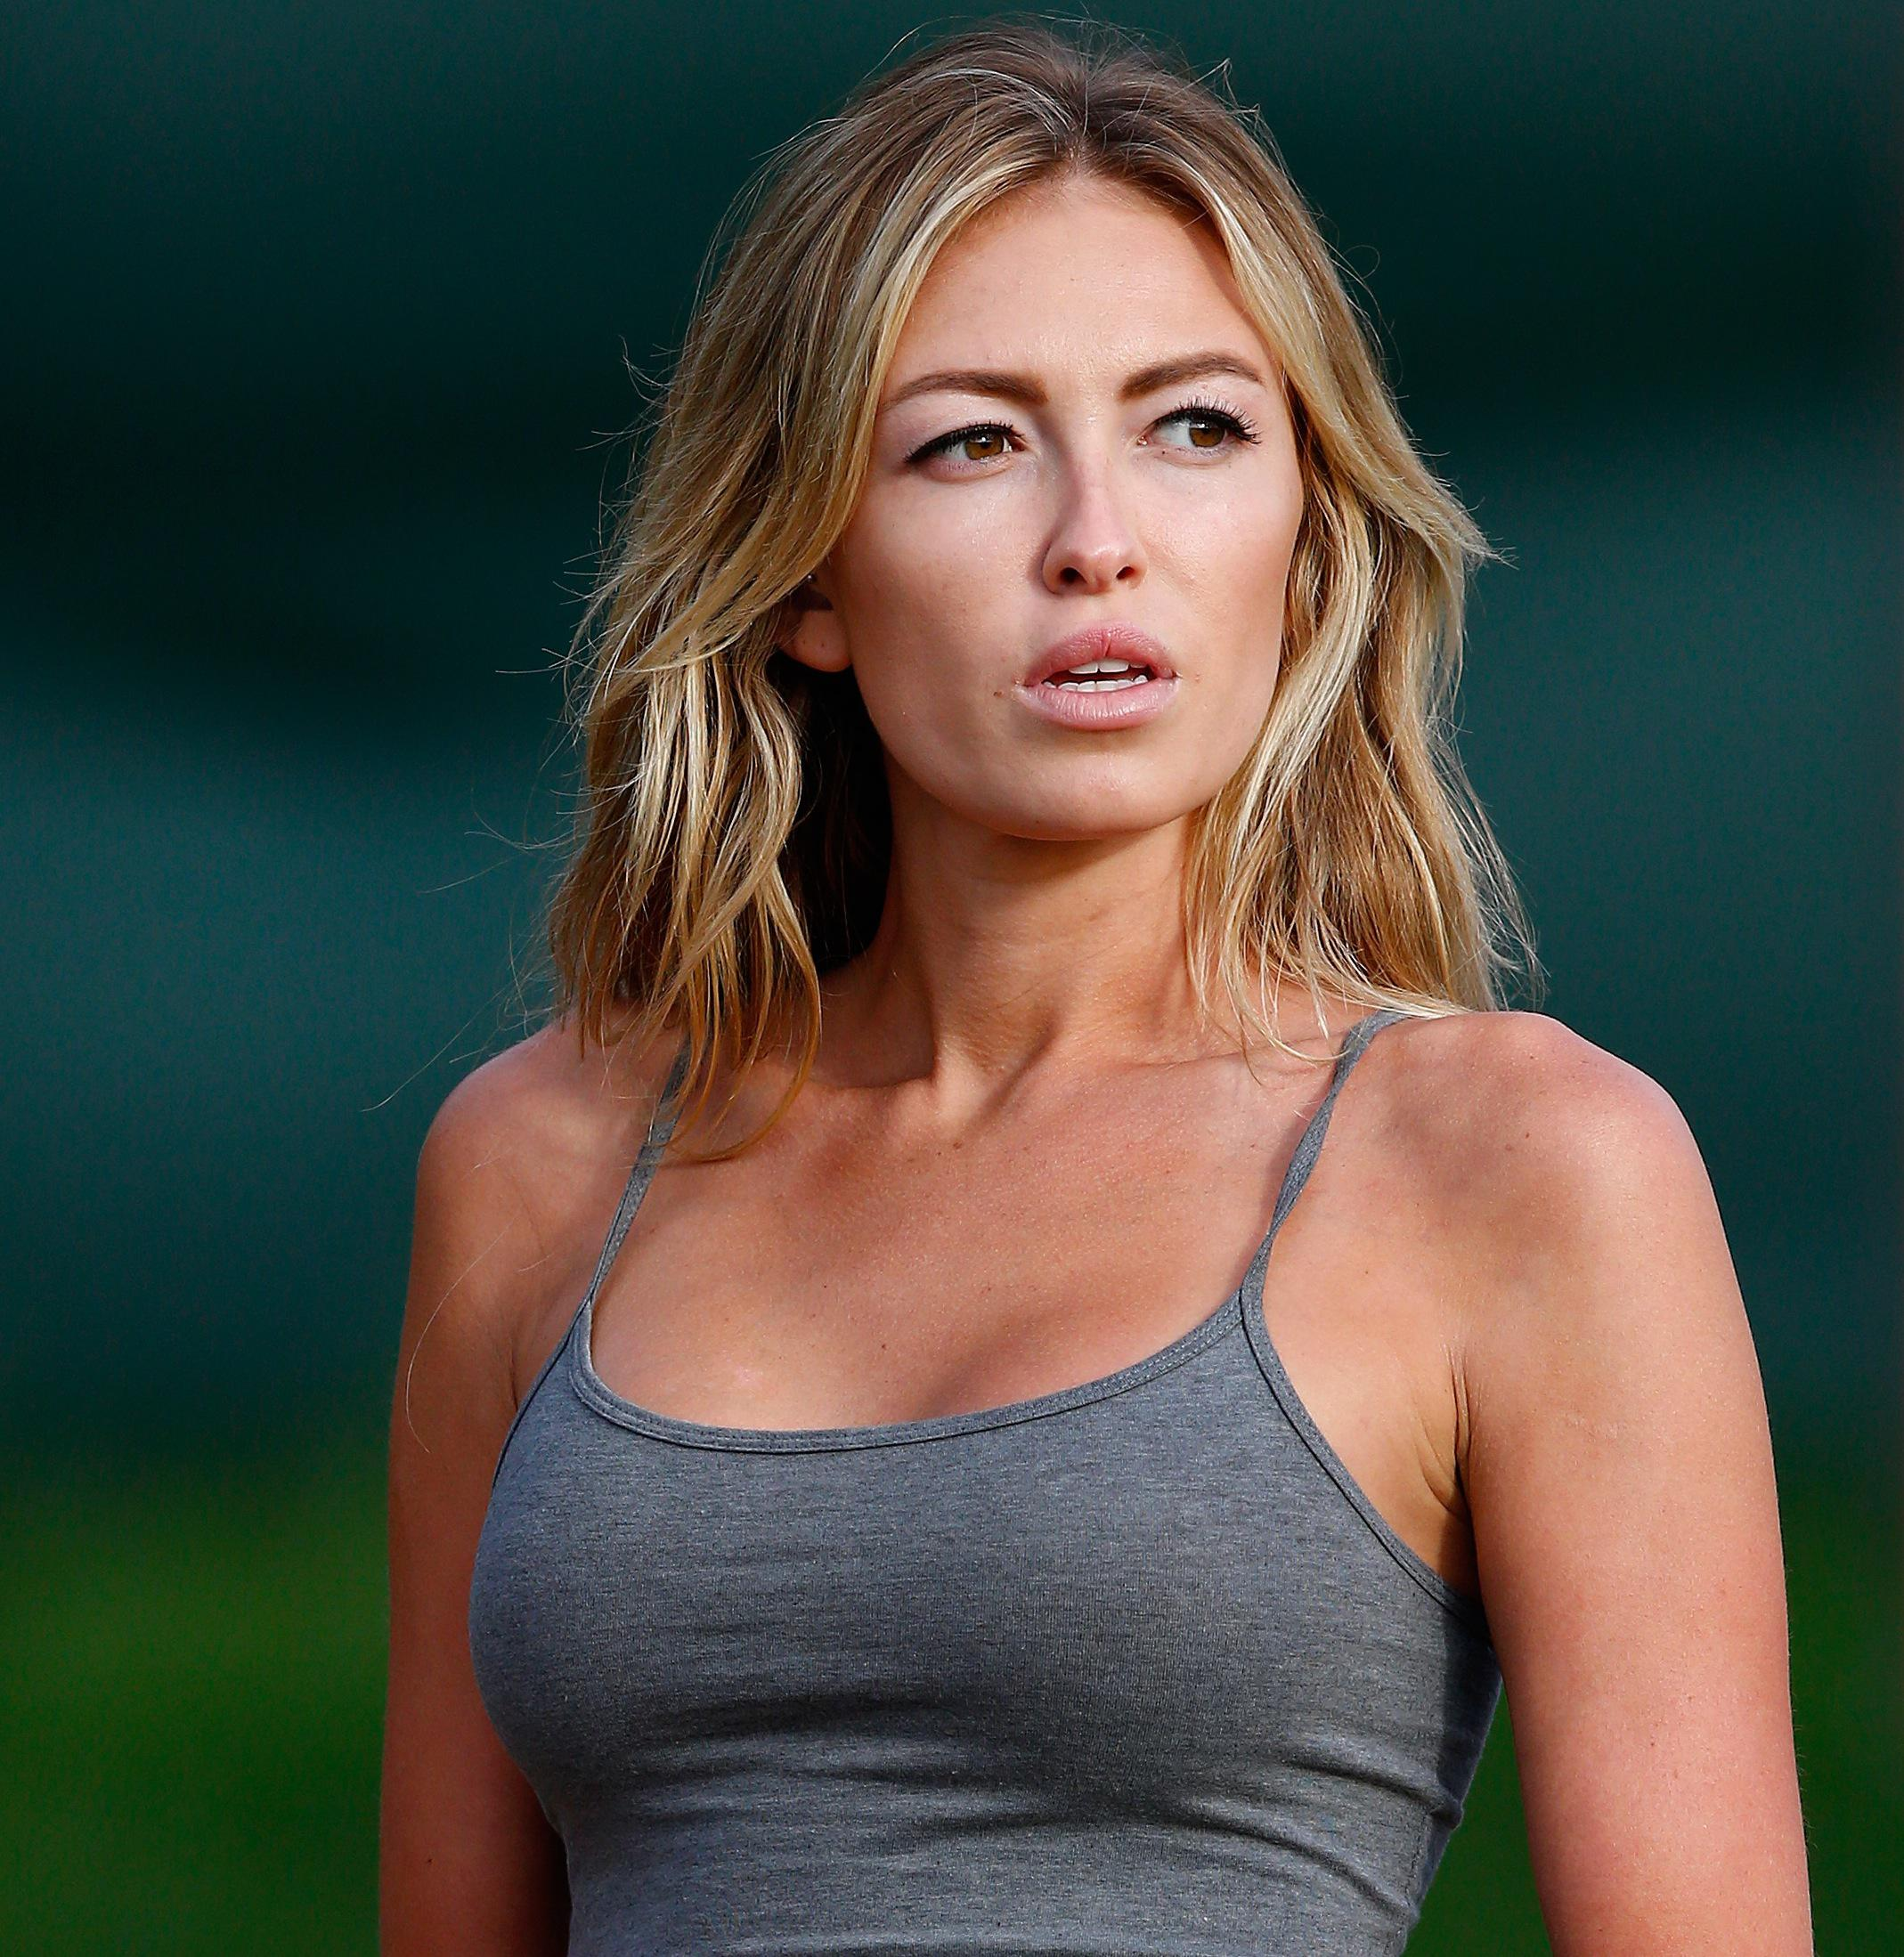 WATCH Paulina Gretzky Shows Legs and Cleavage in Sexy New